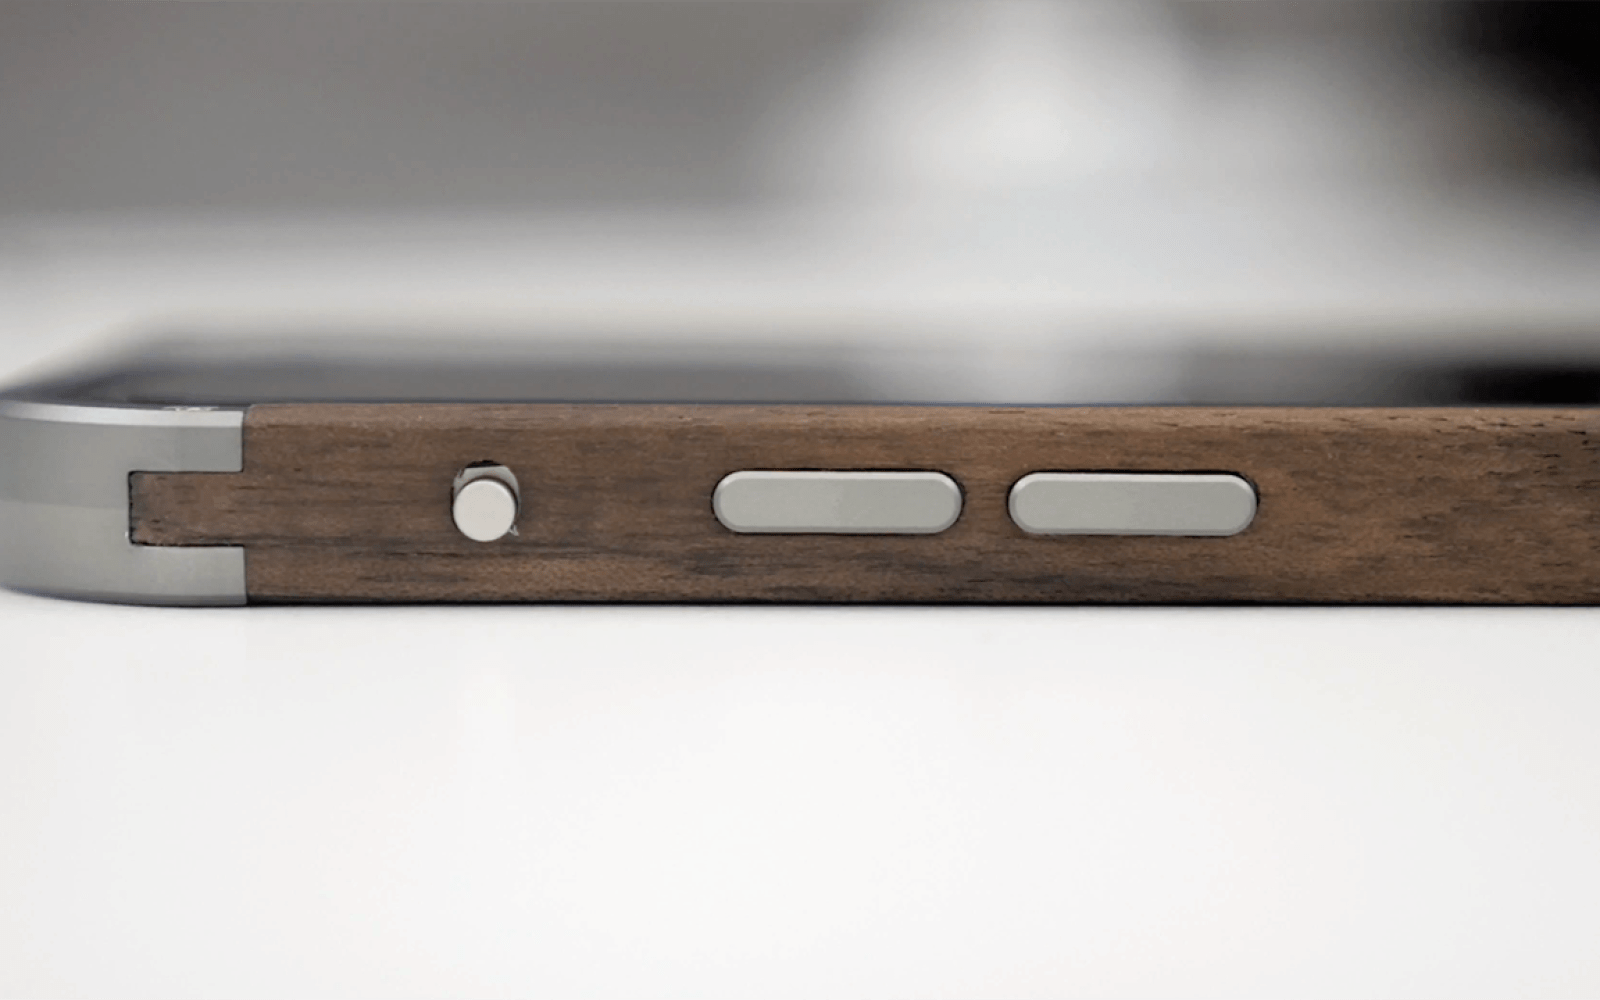 Hands-on with Vesel's Wood Series bumper for iPhone 6 (Video)